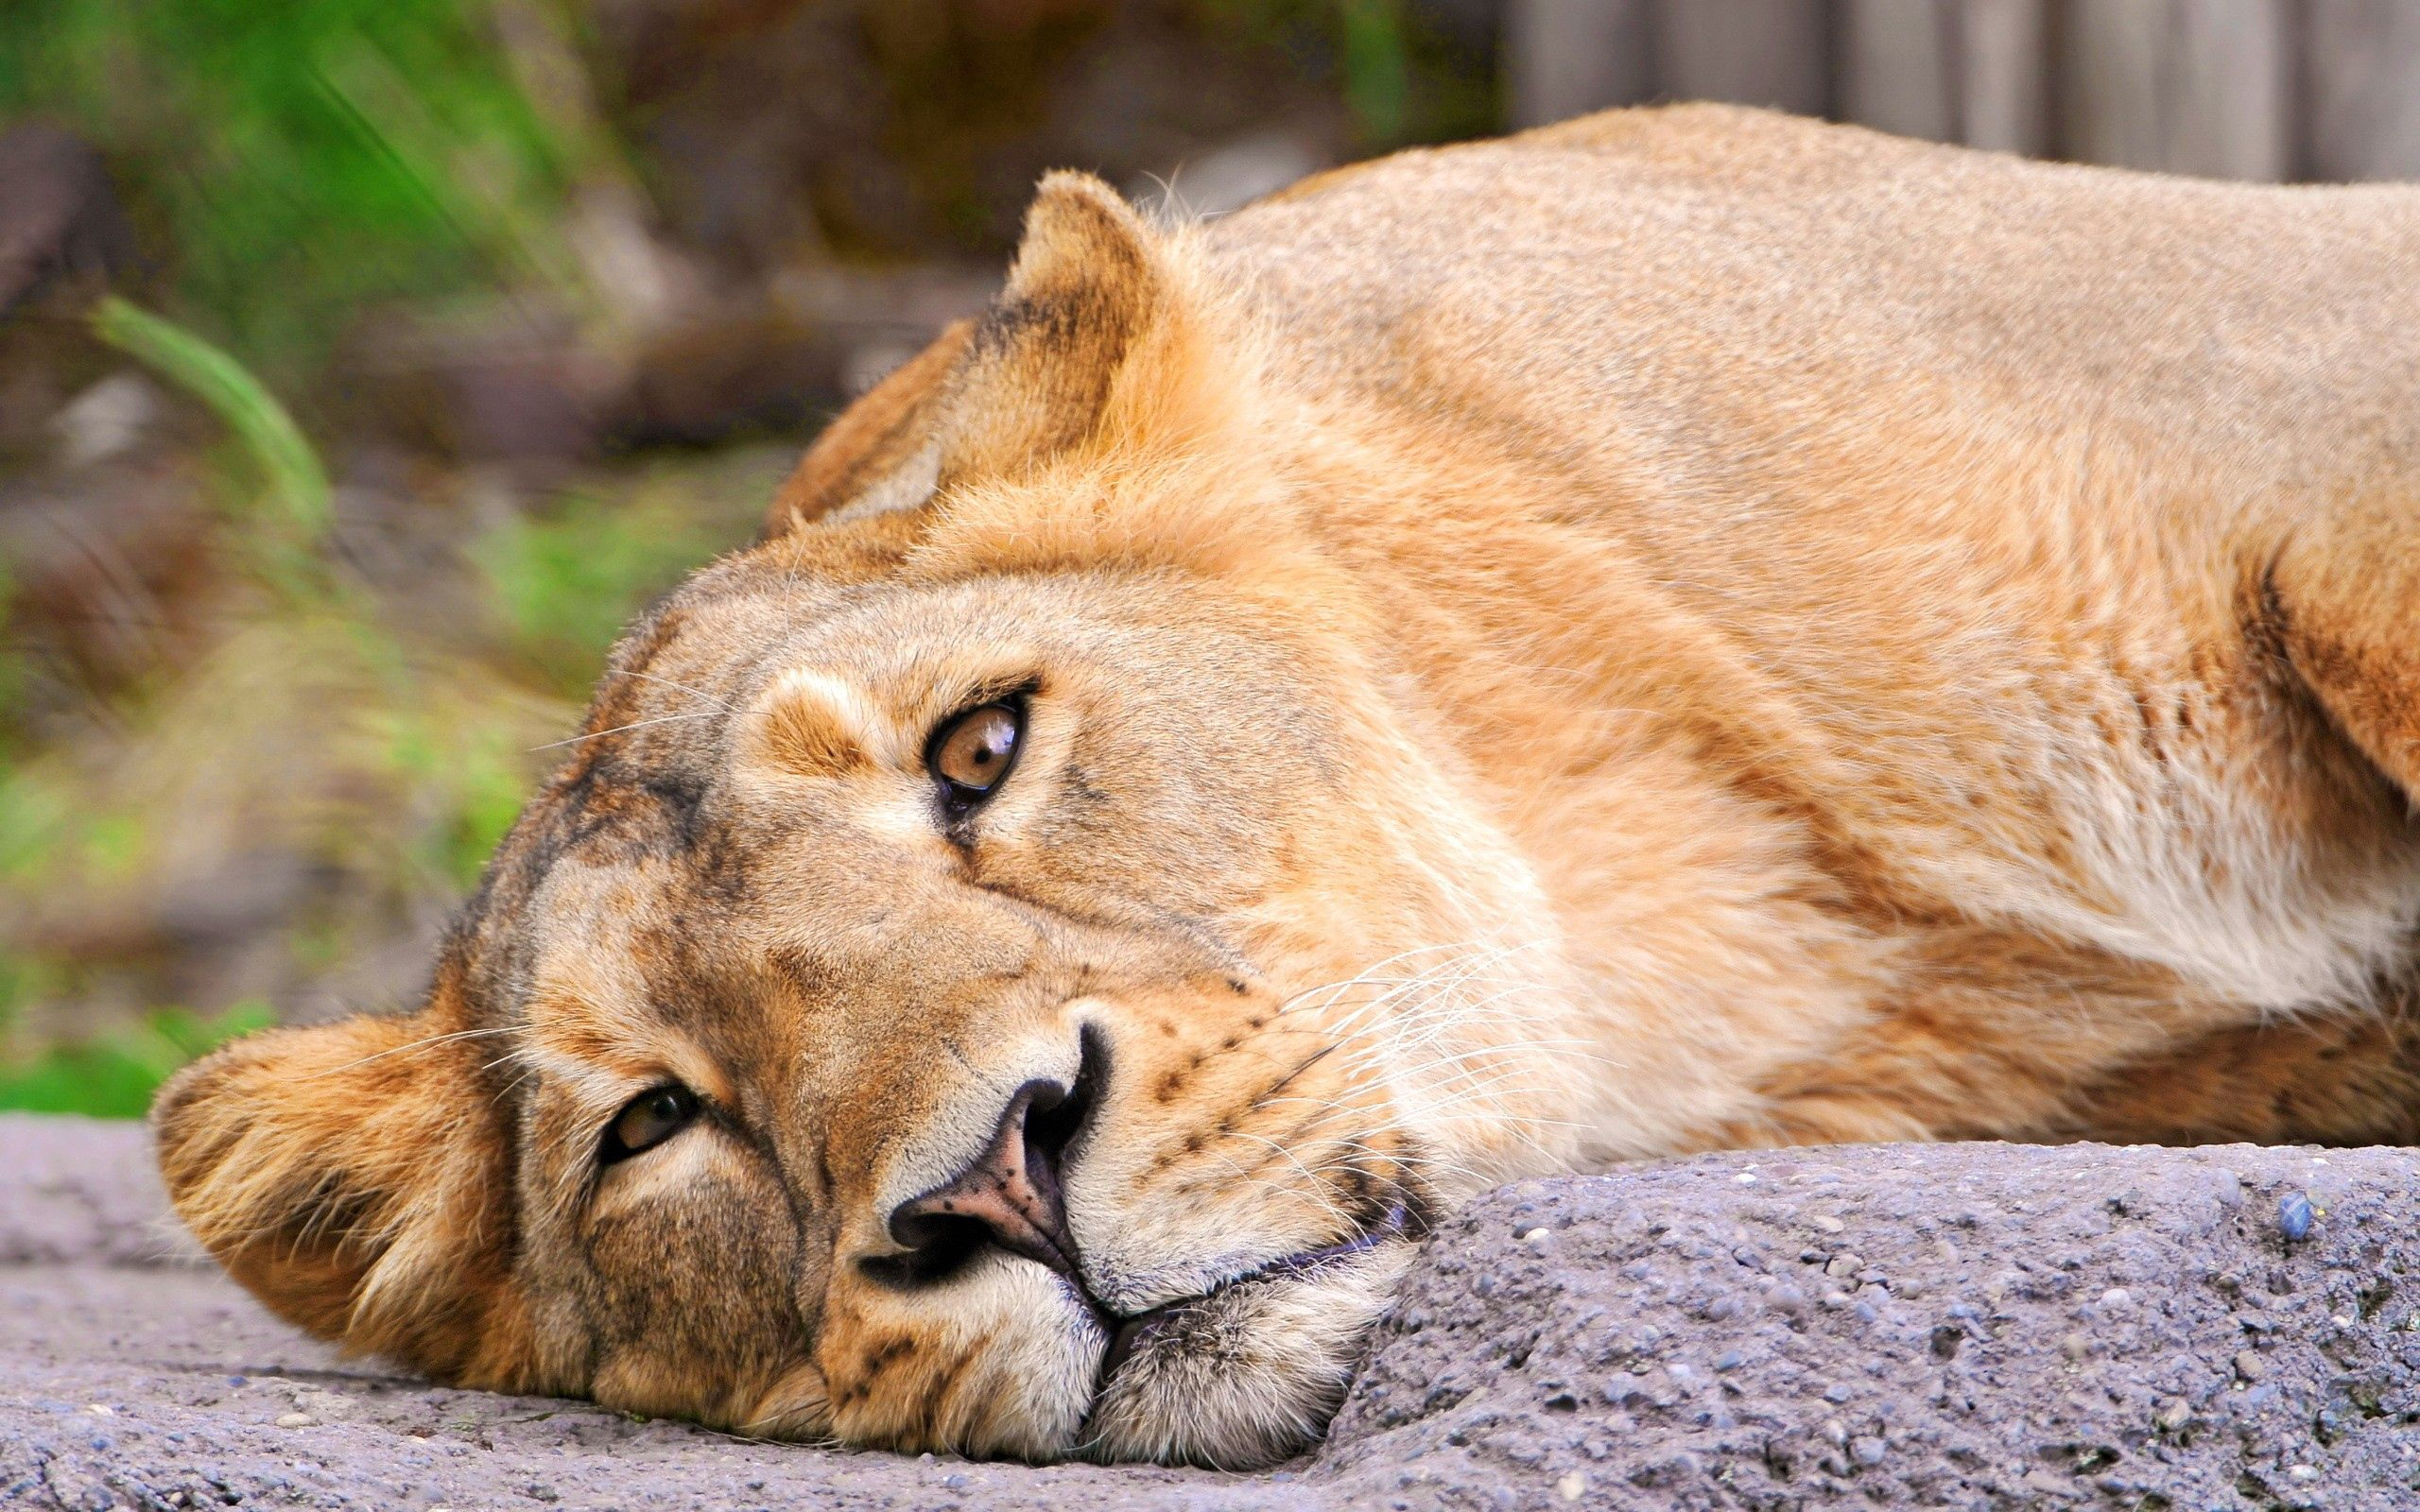 116938 download wallpaper Animals, Lioness, Muzzle, Lies screensavers and pictures for free